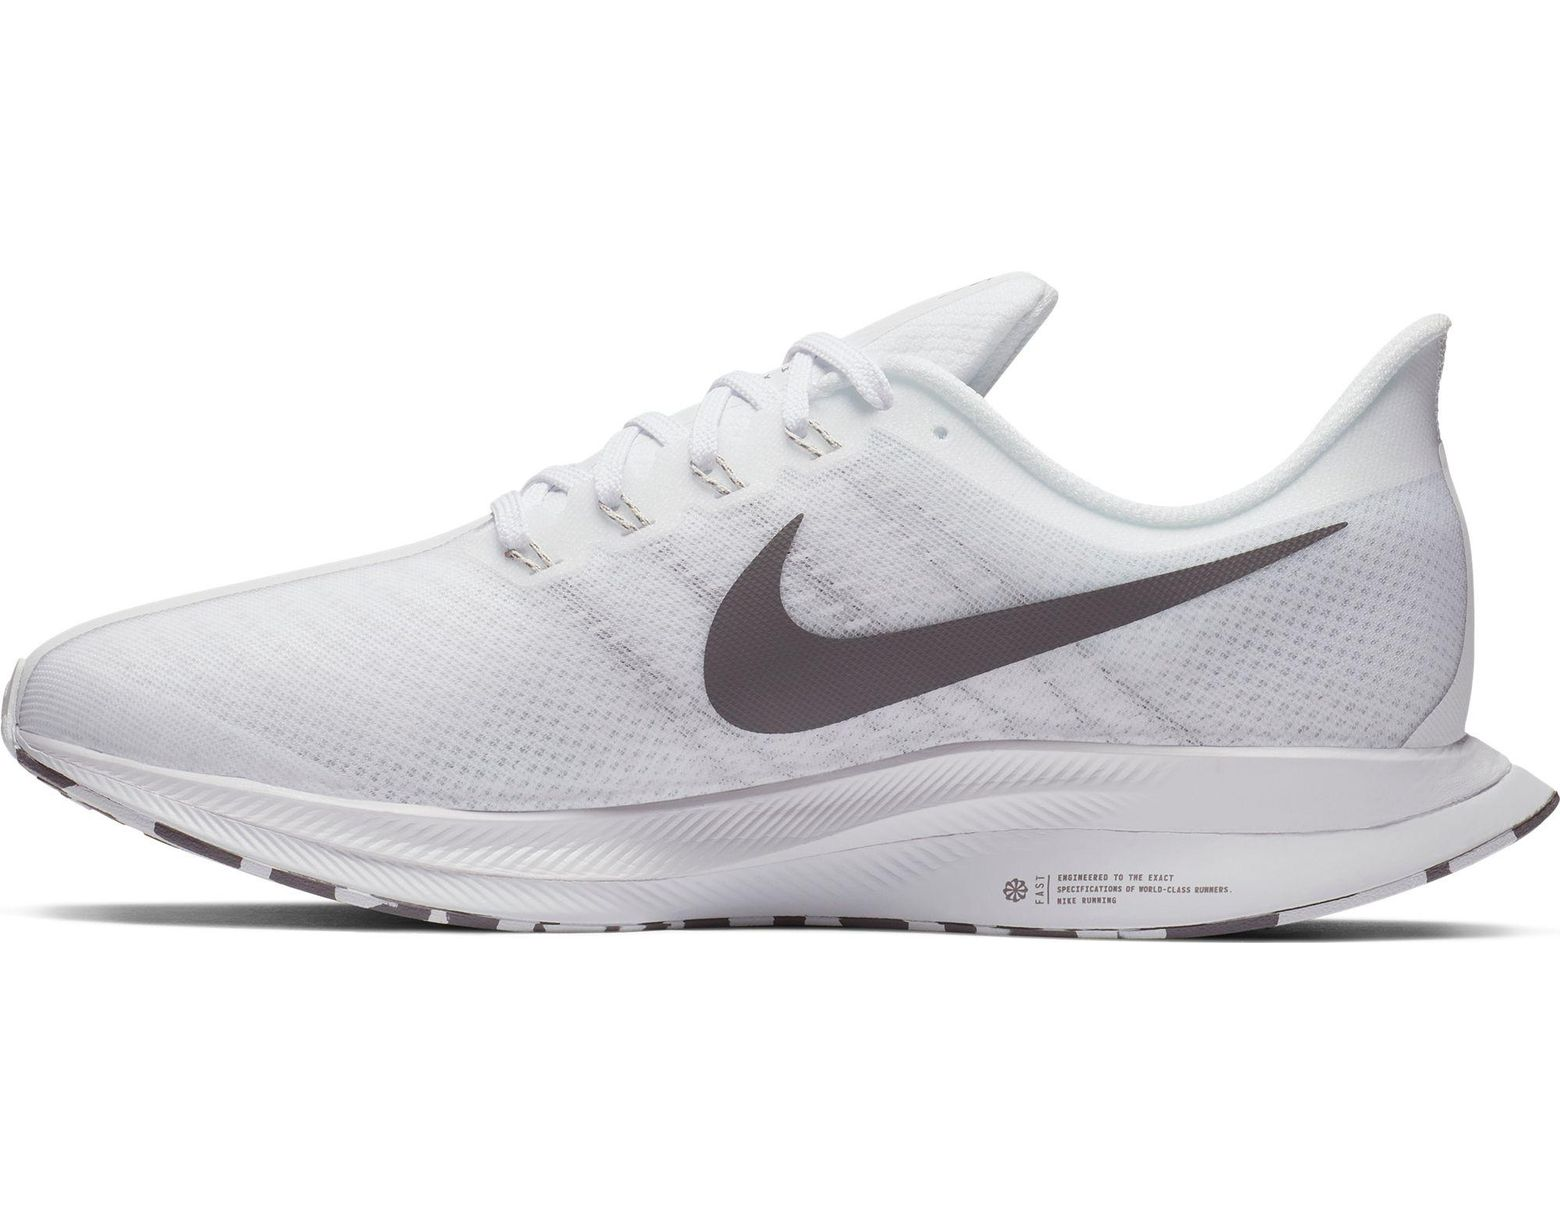 661be644032f2 Lyst - Nike Air Zoom Pegasus 35 Turbo Running Shoes in Gray for Men